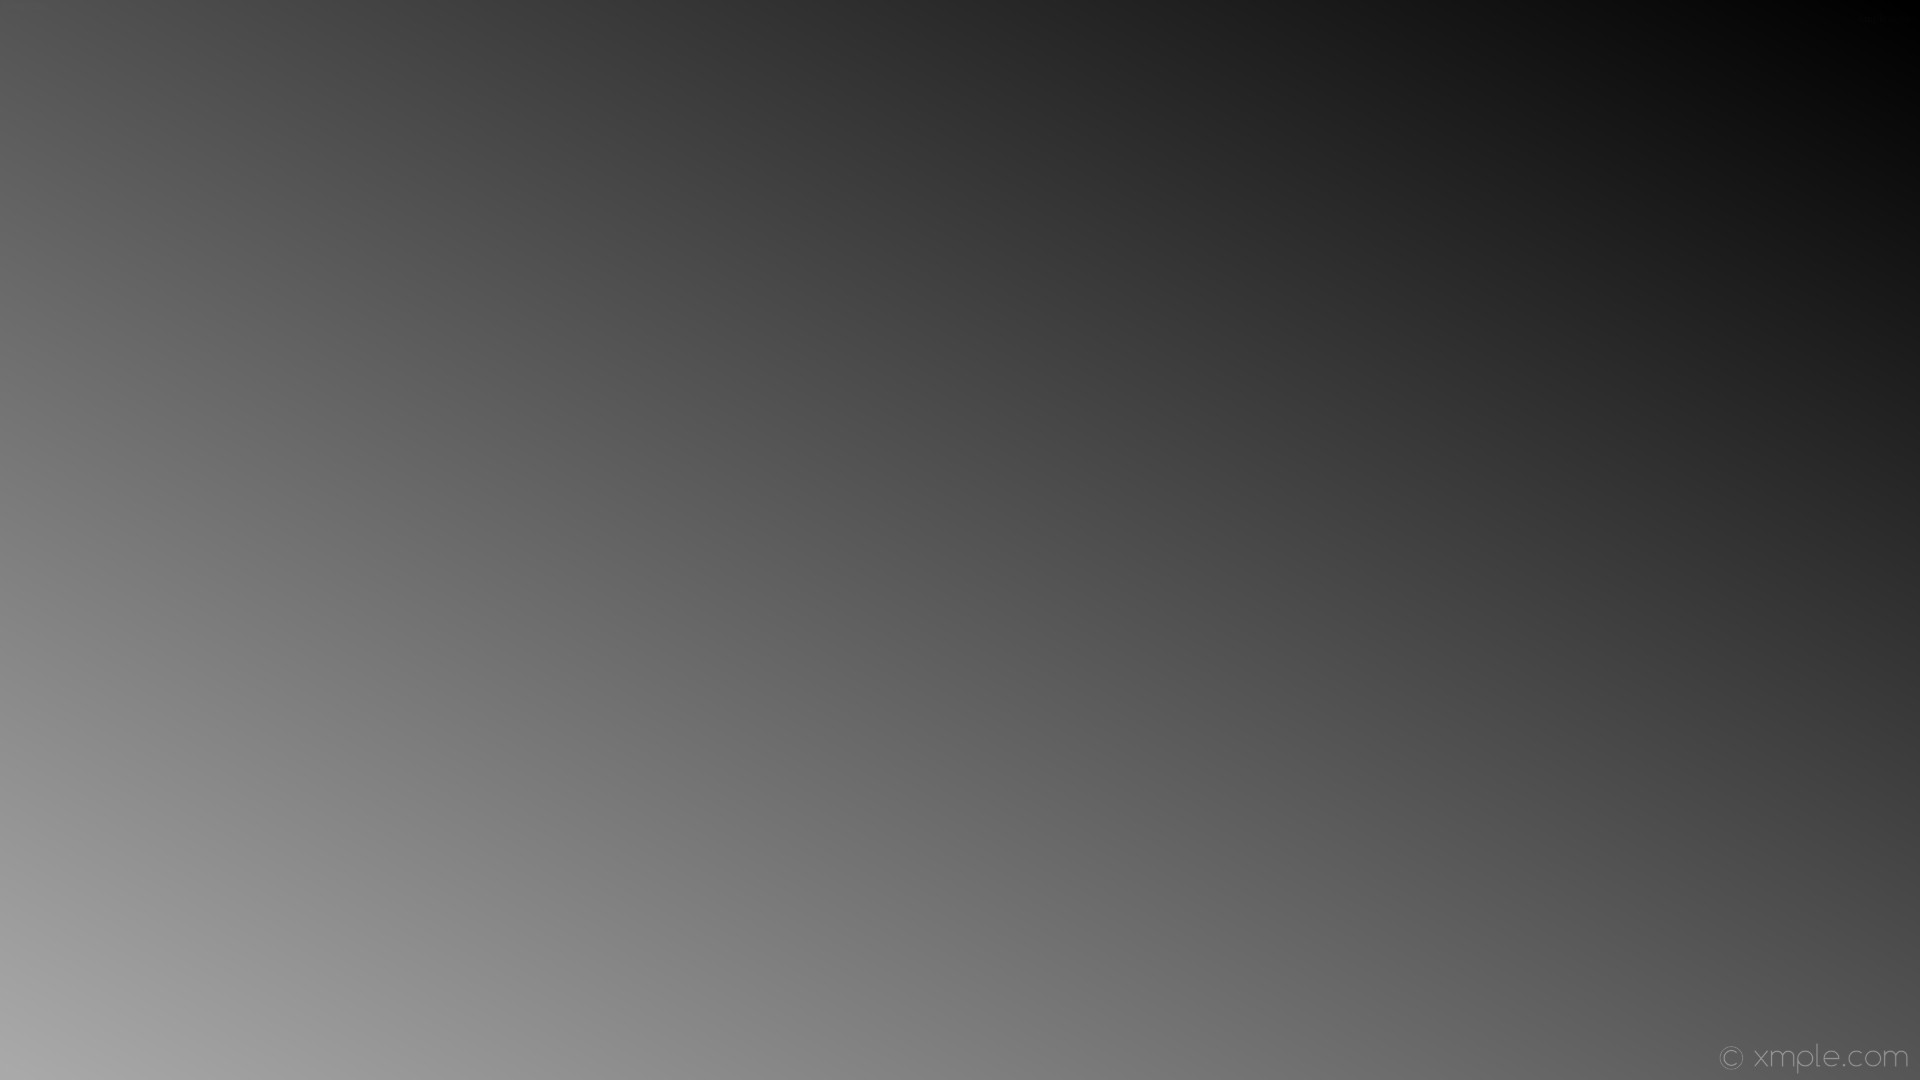 wallpaper grey black gradient linear dark gray #a9a9a9 #000000 210°